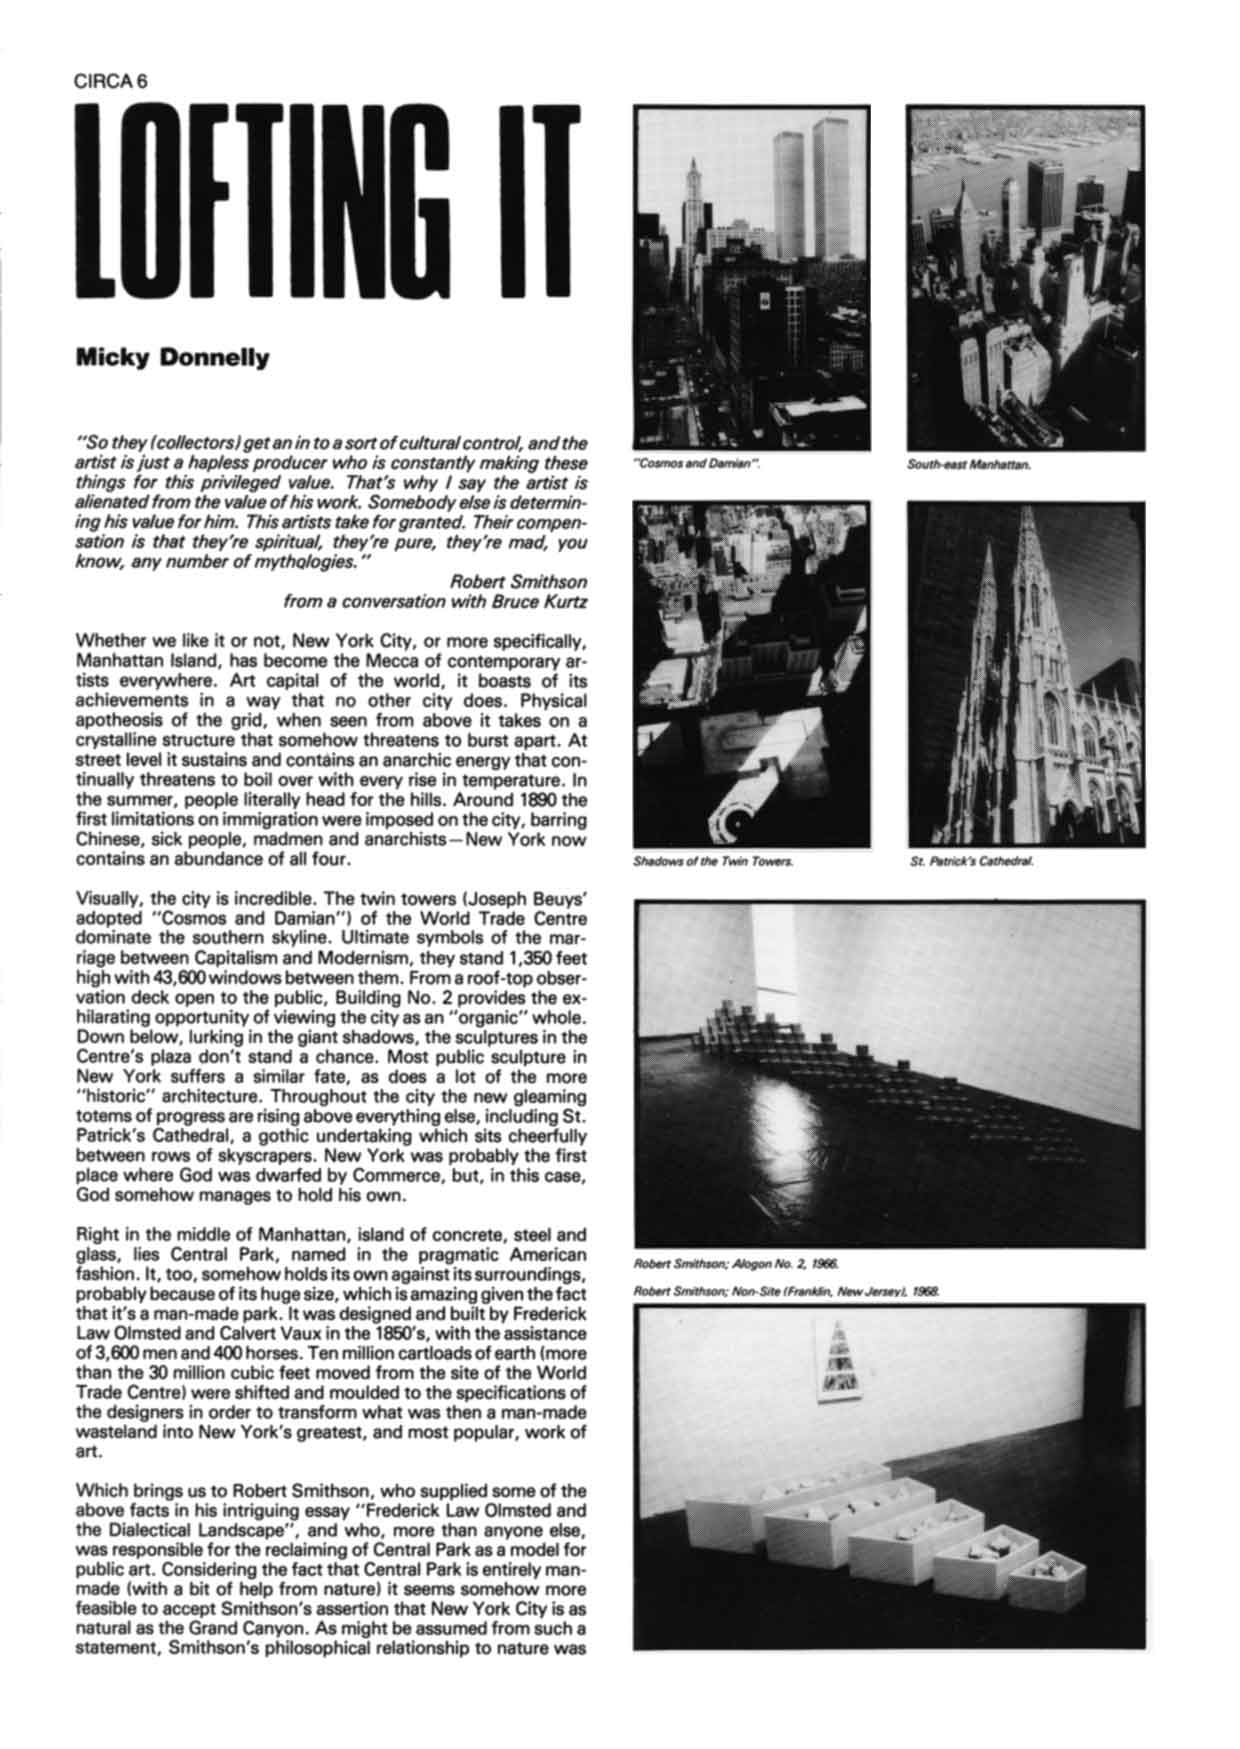 CIRCA Issue #5: Lofting It – Micky Donnelly